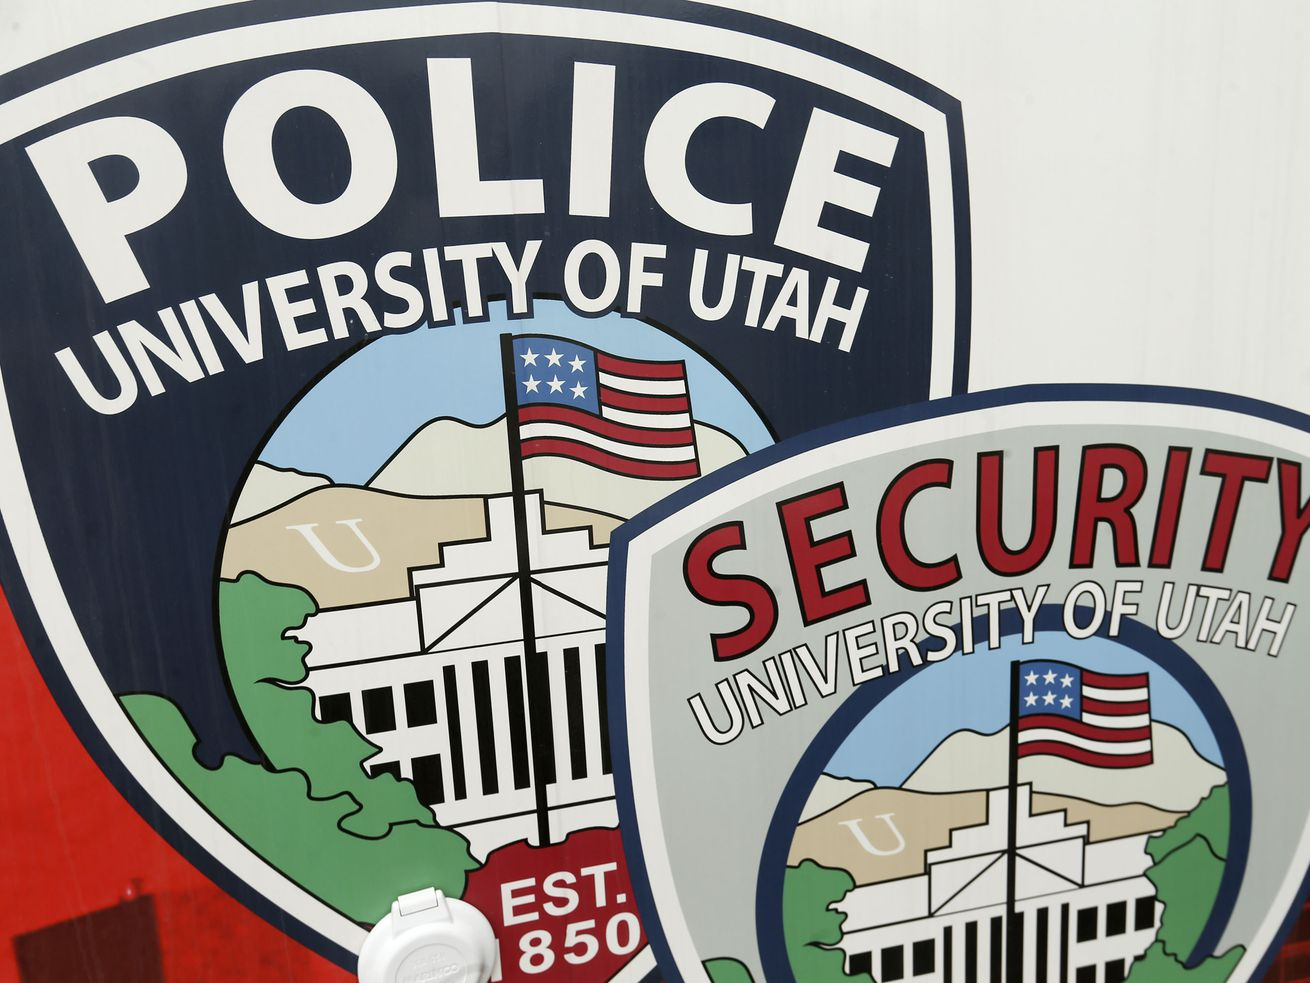 Police and security services emblems are pictured at the University of Utah in Salt Lake City on Friday, April 16, 2021.